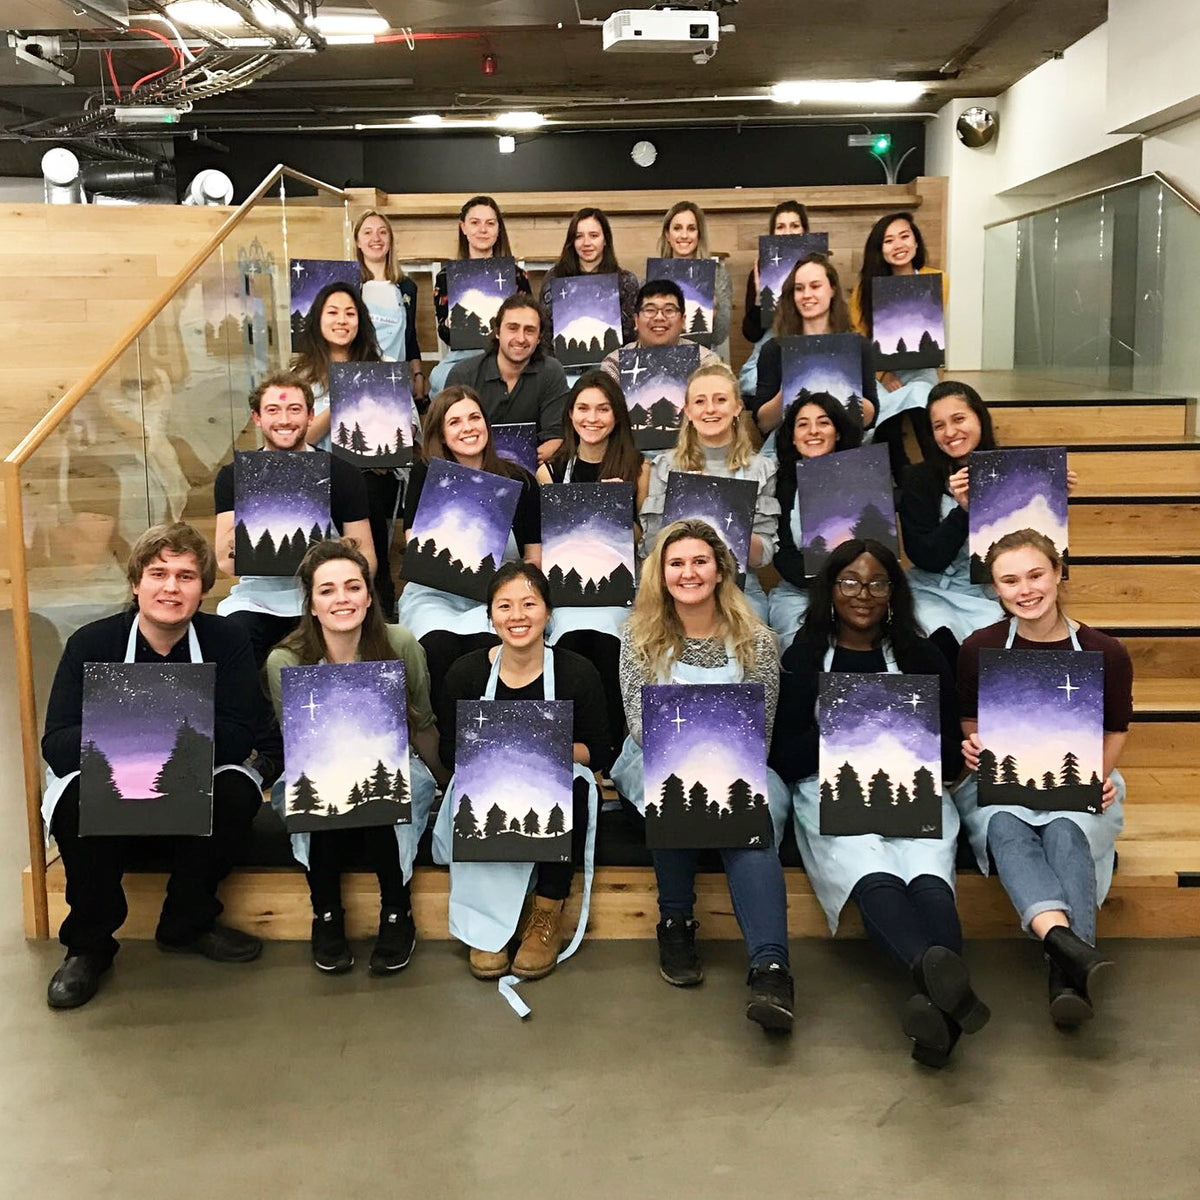 office employees posing with their acrylic paintings